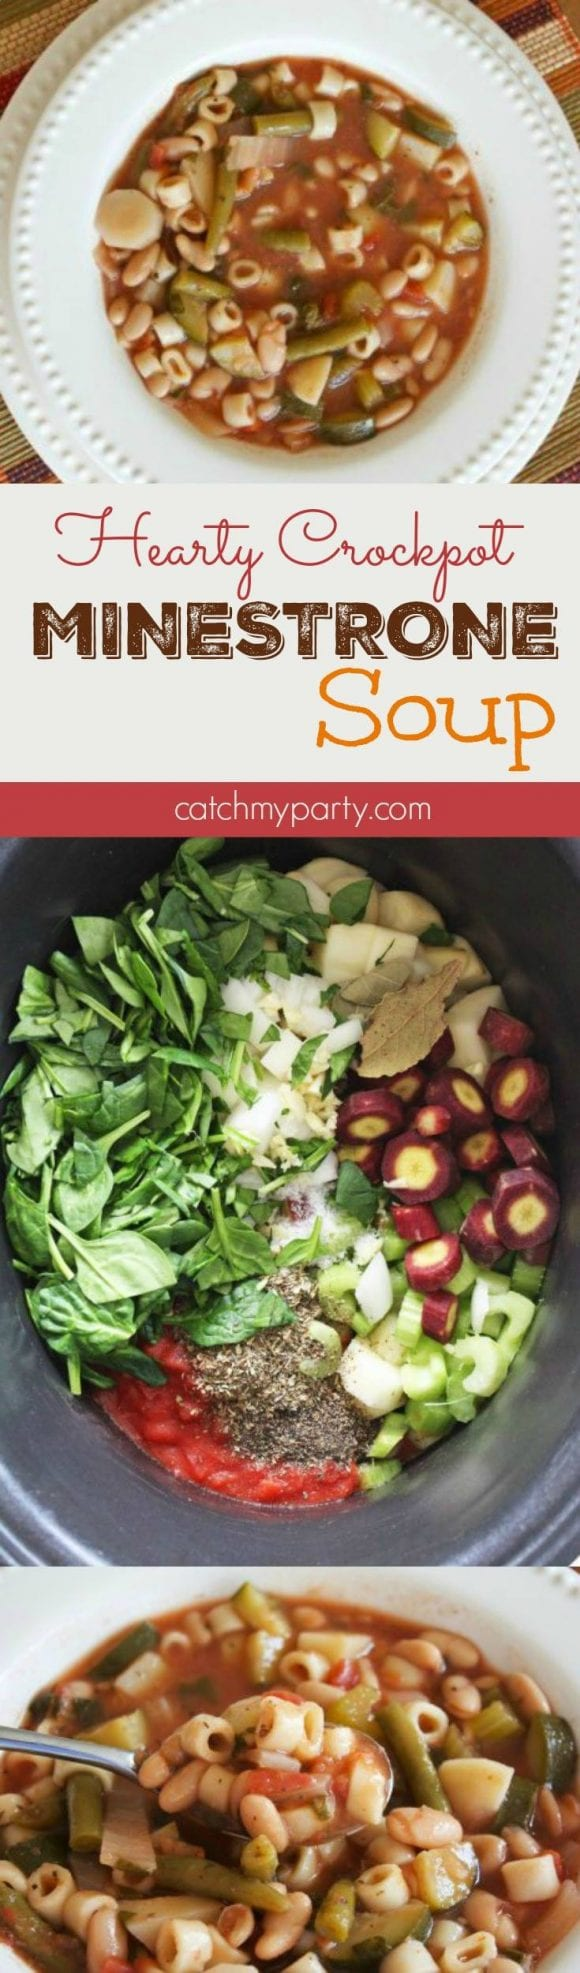 Hearty Crockpot Minestrone Soup | CatchMyParty.com